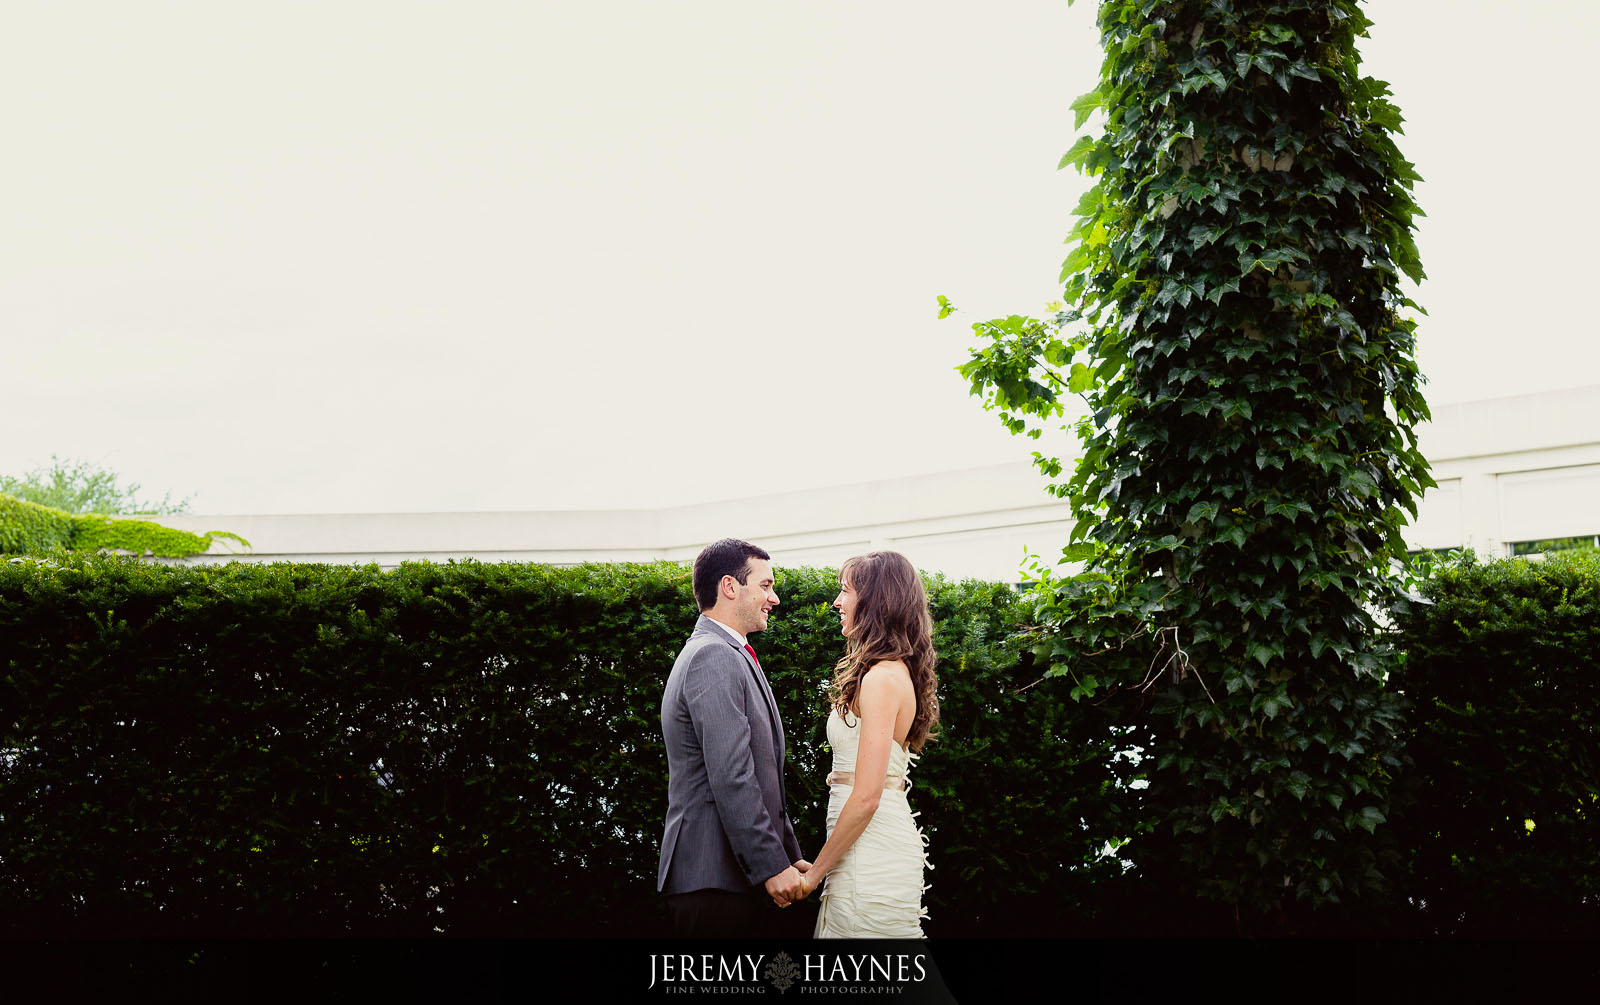 romantic-columbus-wedding-first-look-jeremy-haynes-photography-the-commons.jpg